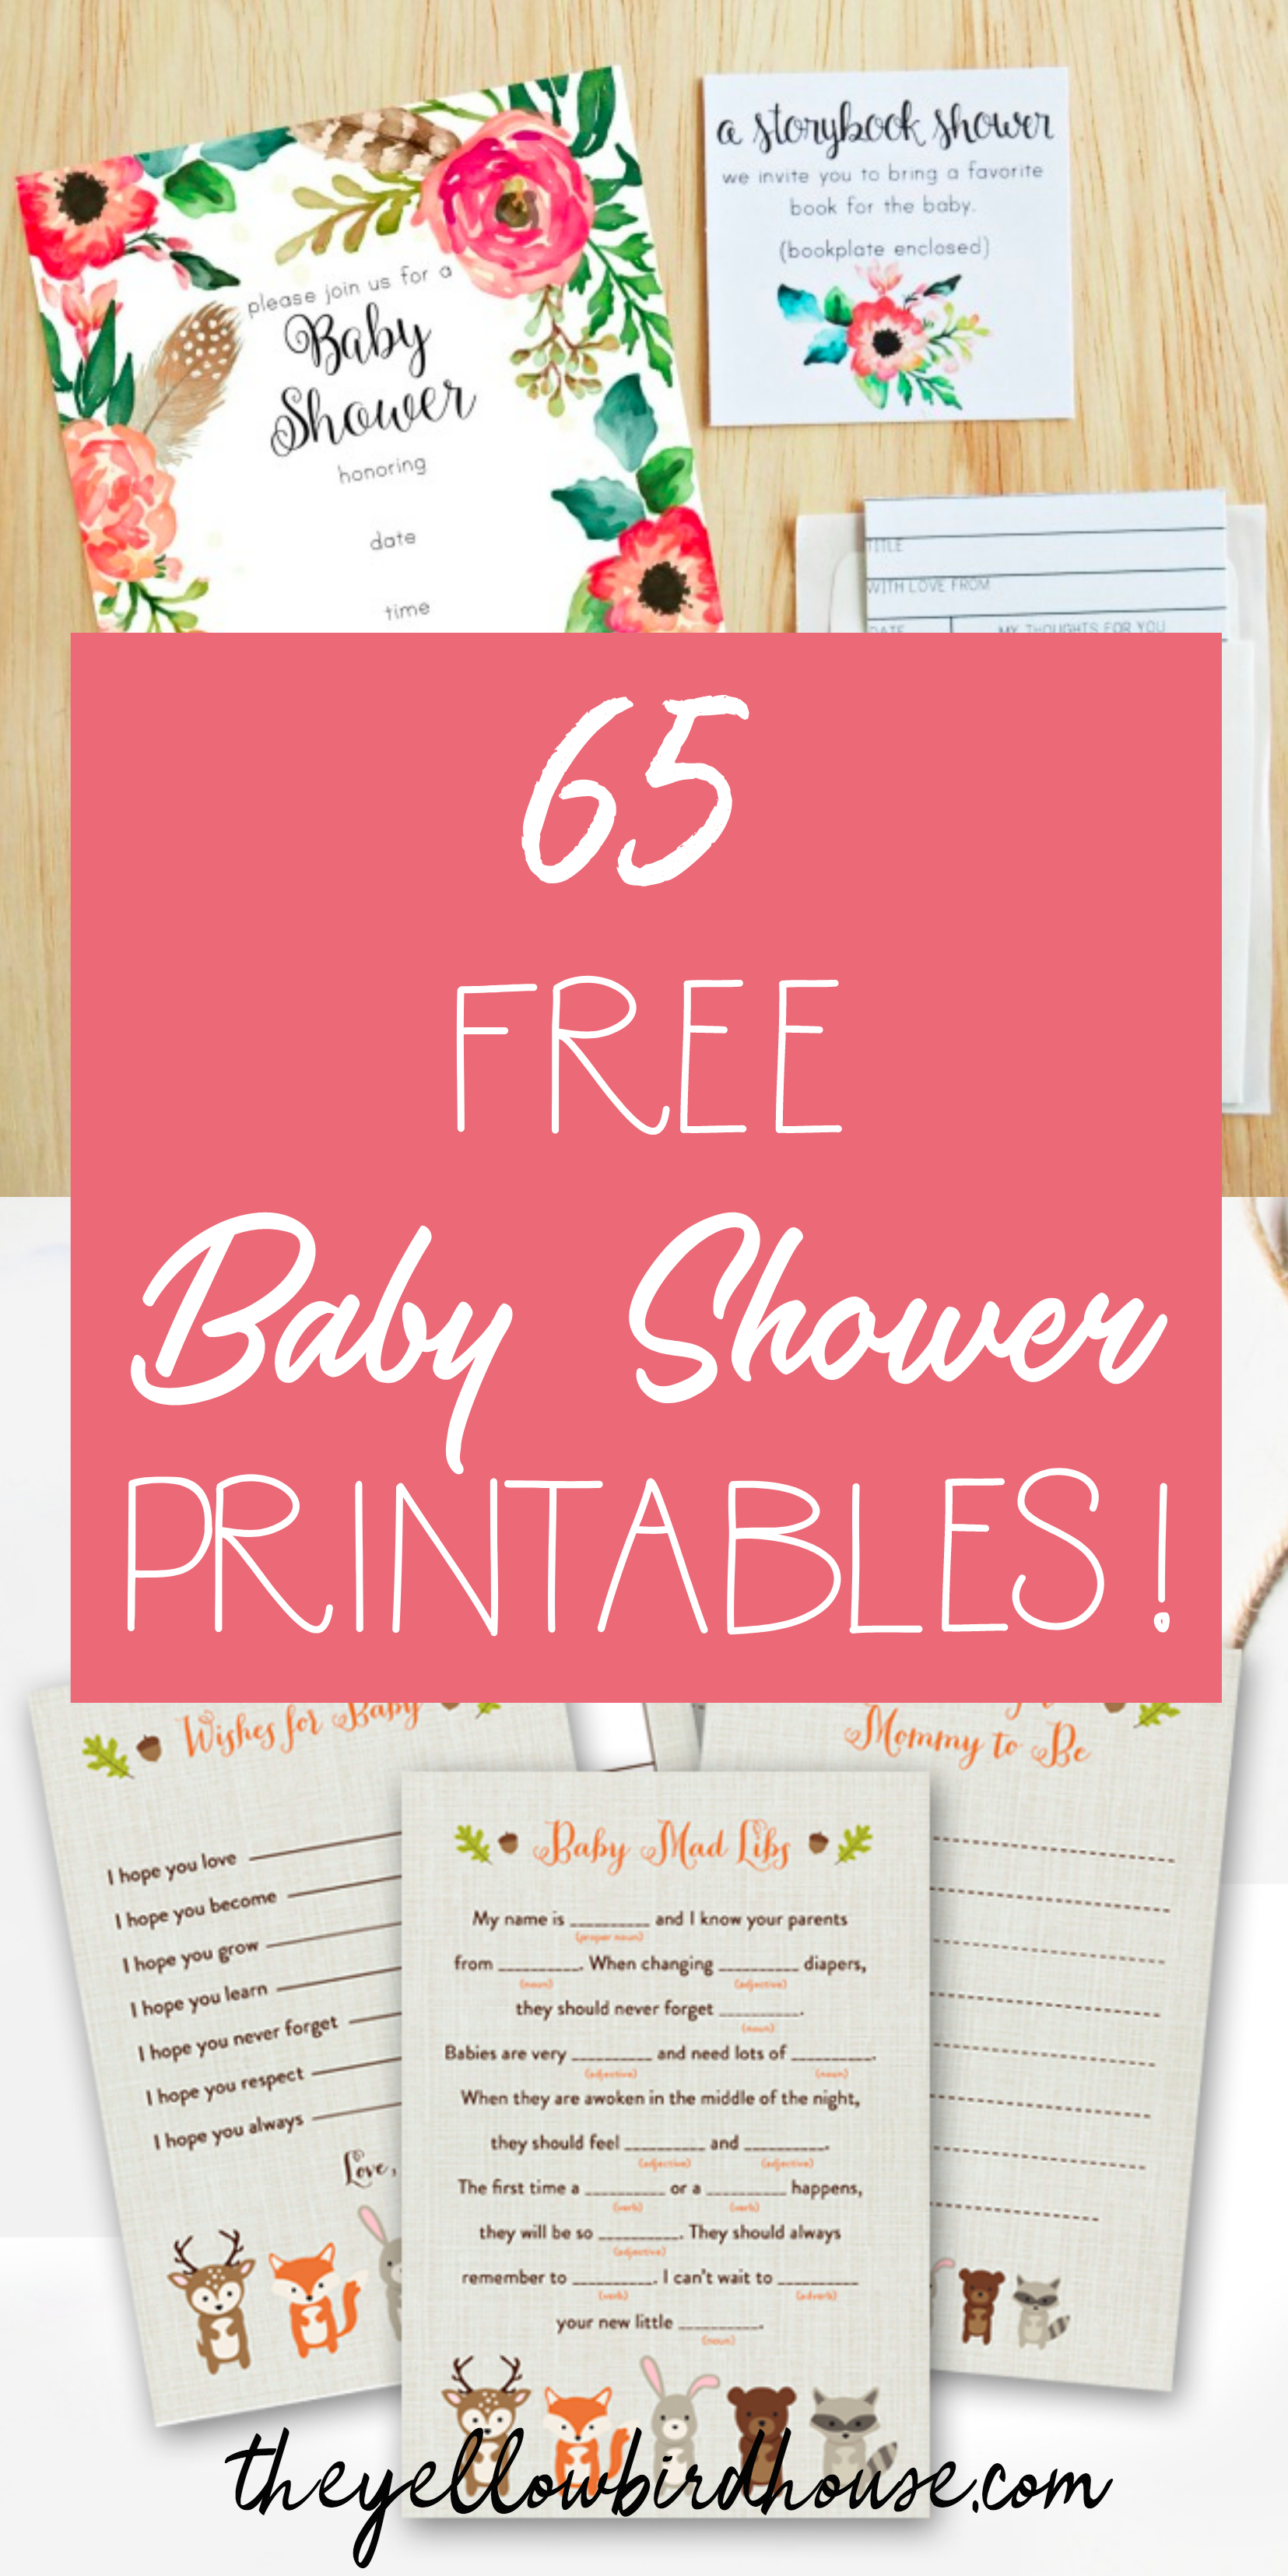 65 Free Baby Shower Printables For An Adorable Party - Free Printable Baby Shower Table Signs